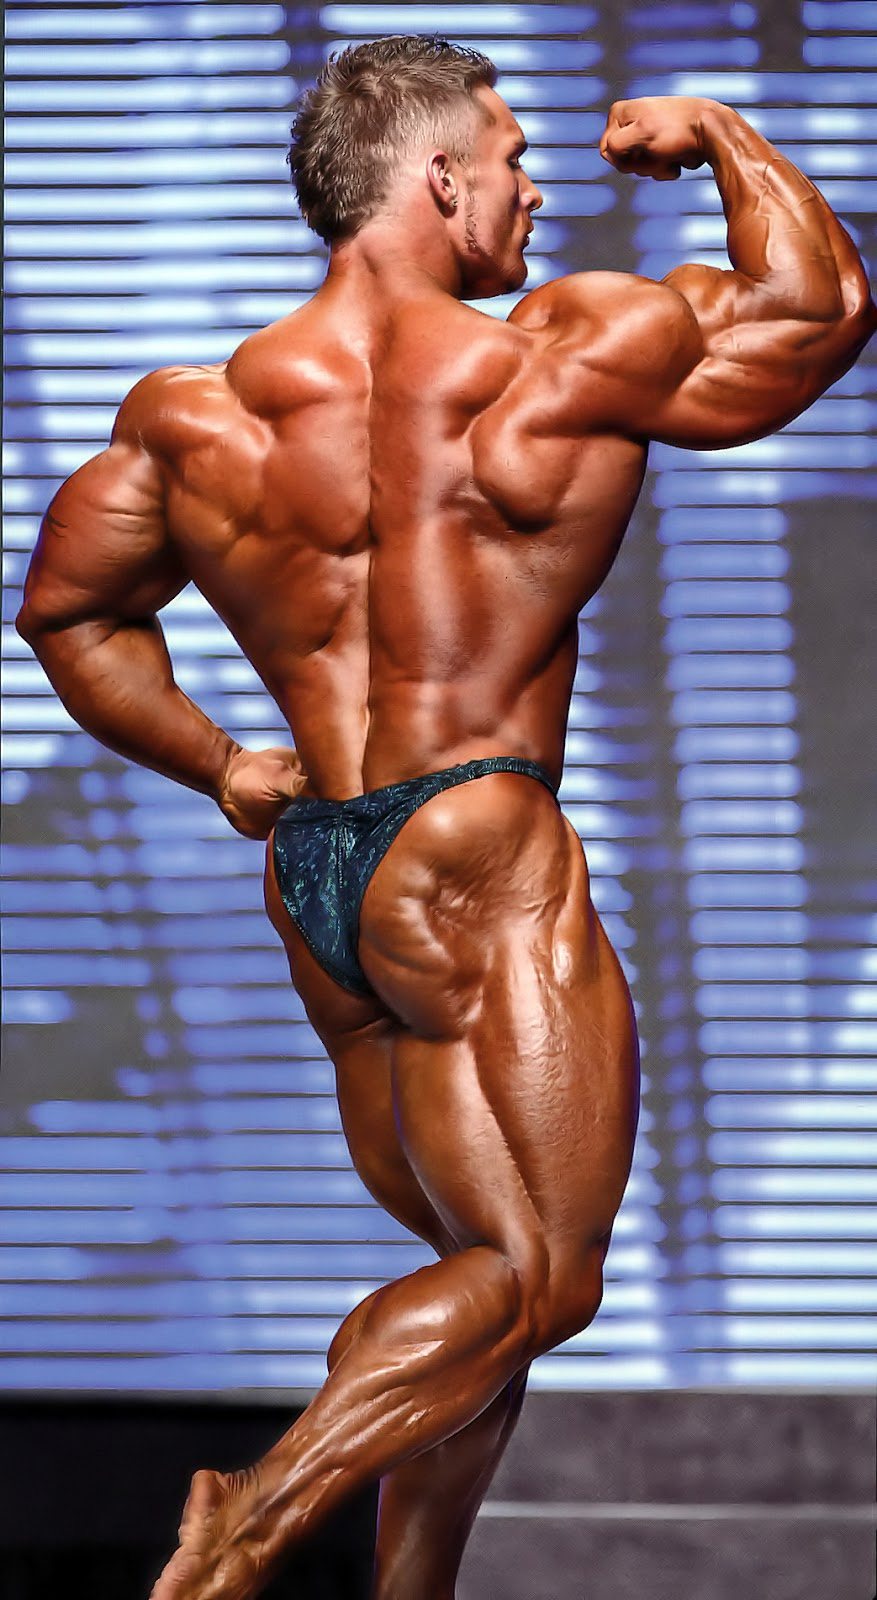 James Flex Lewis - 212 lbs. Division 2012 Mr. Olympia High Quality SCANS!!!